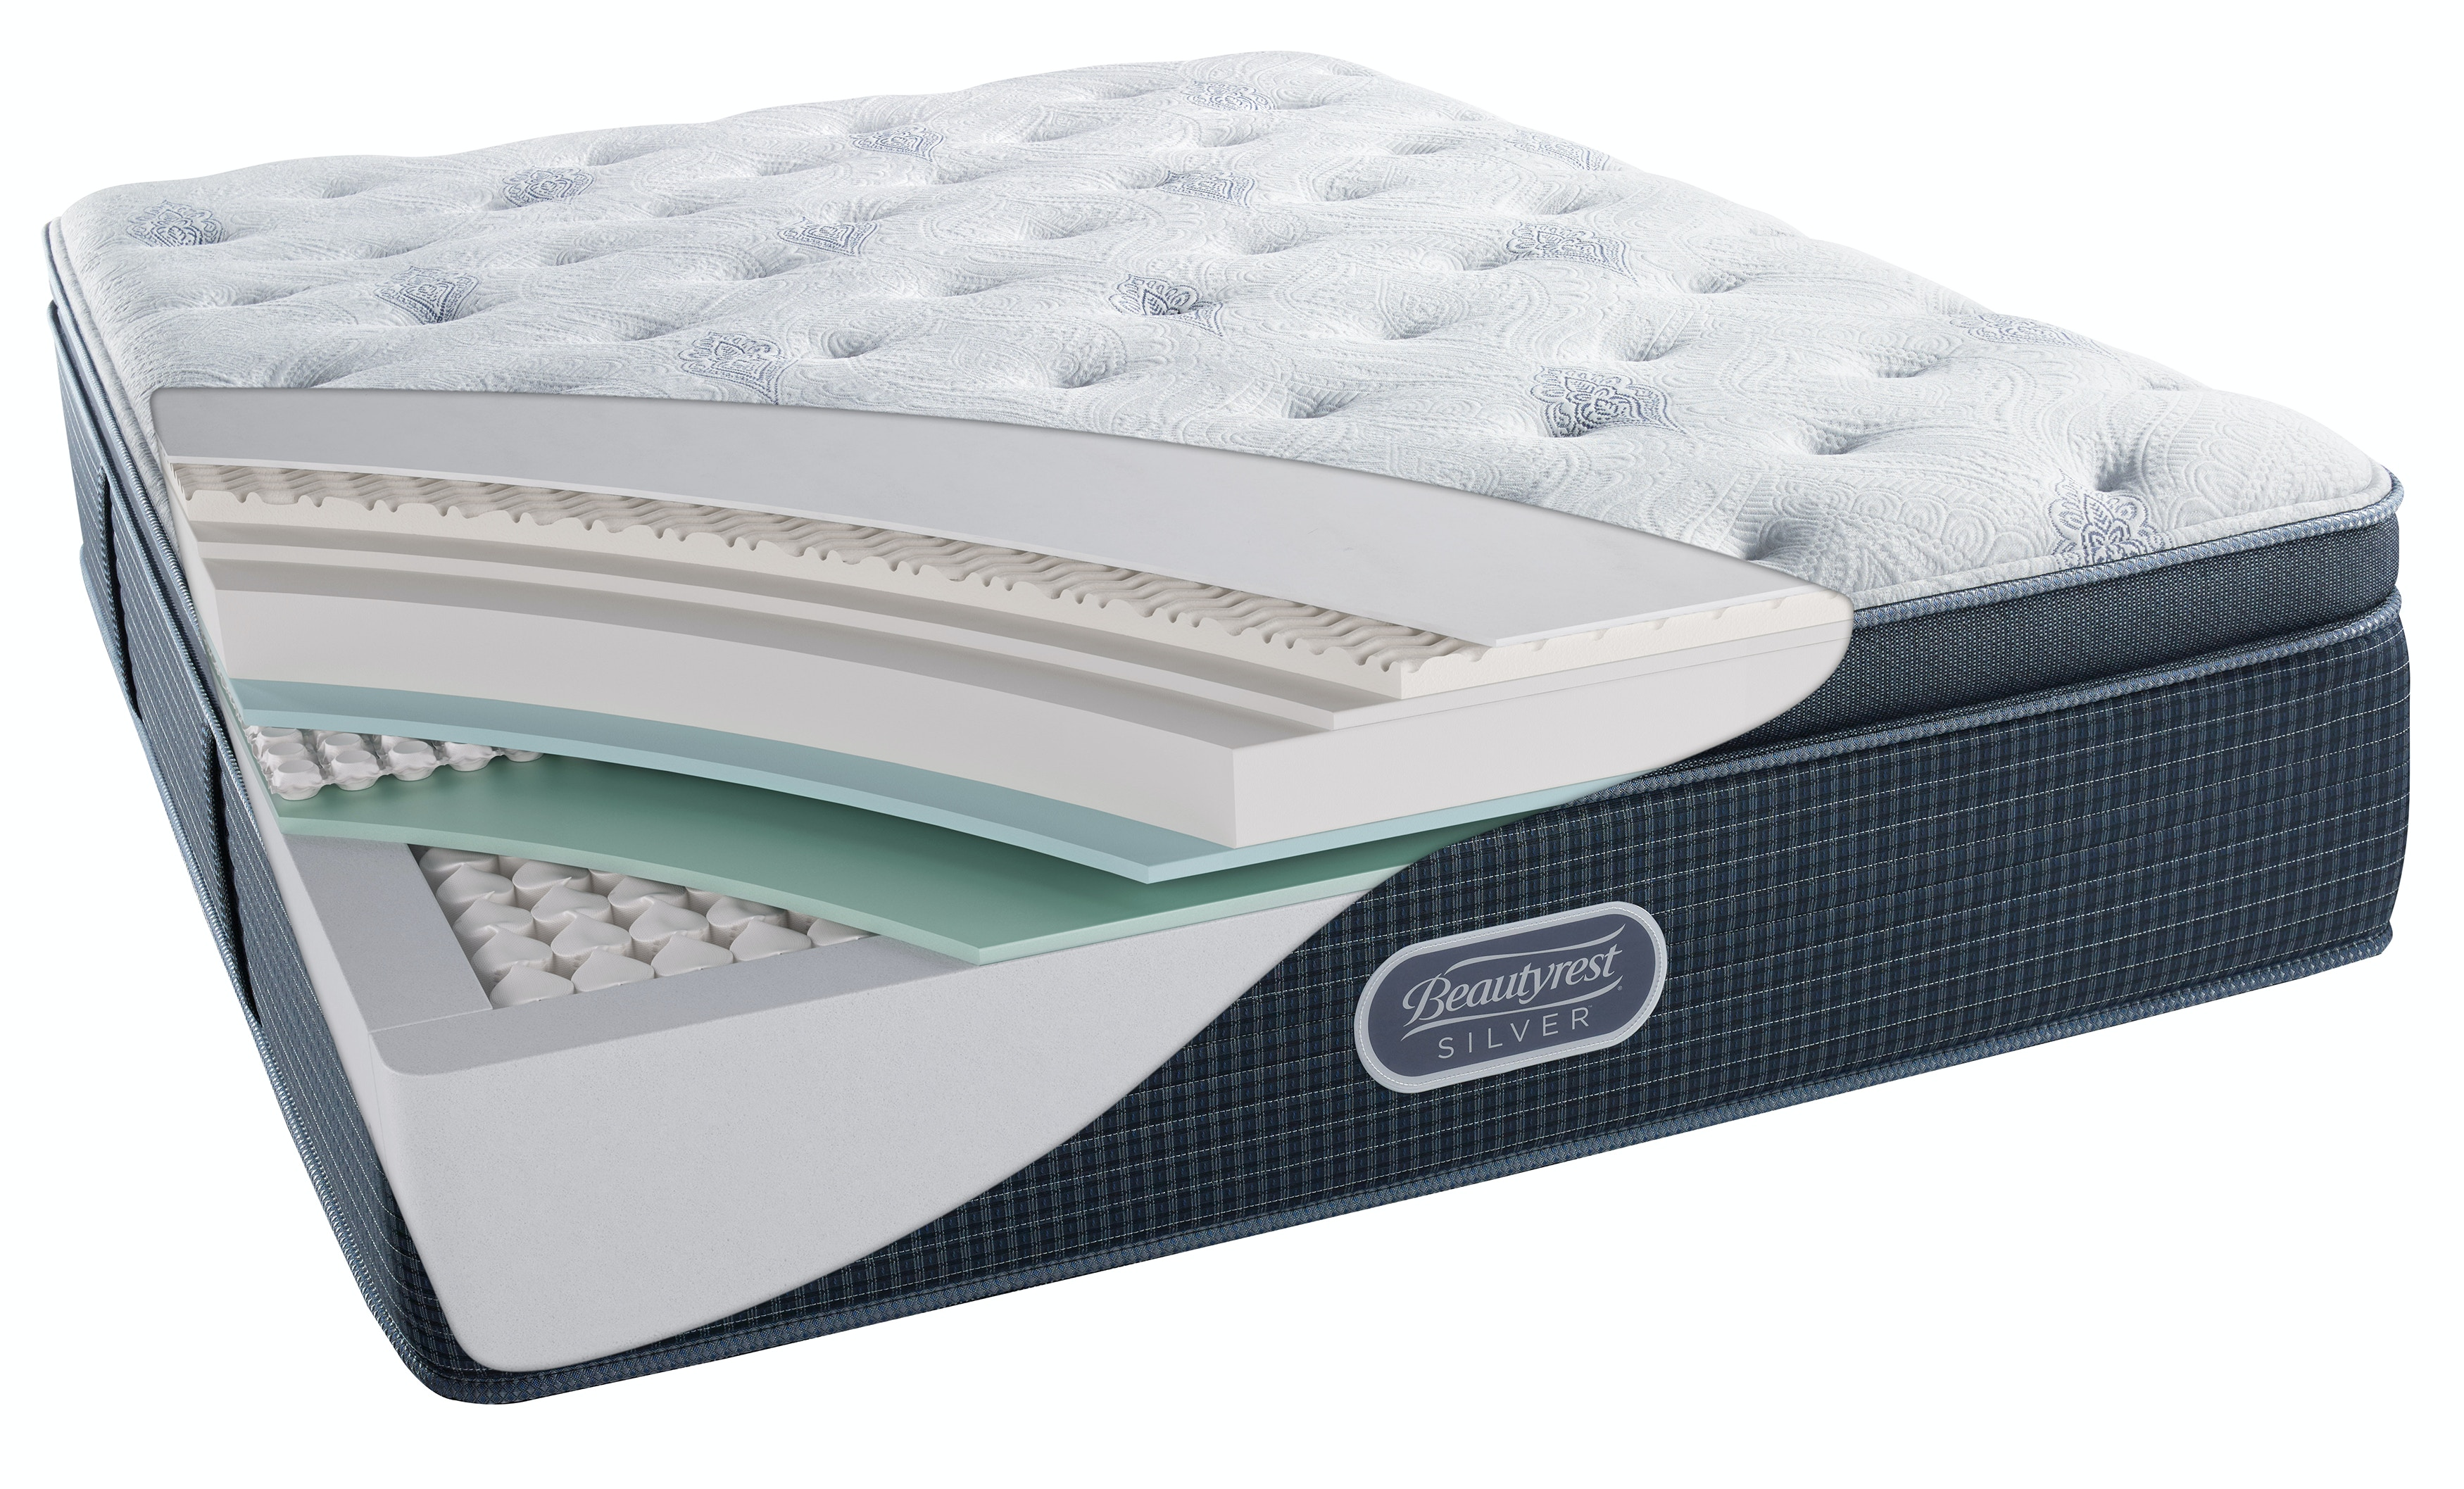 beautyrest silver st thomas luxury firm pillow top mattress queen st